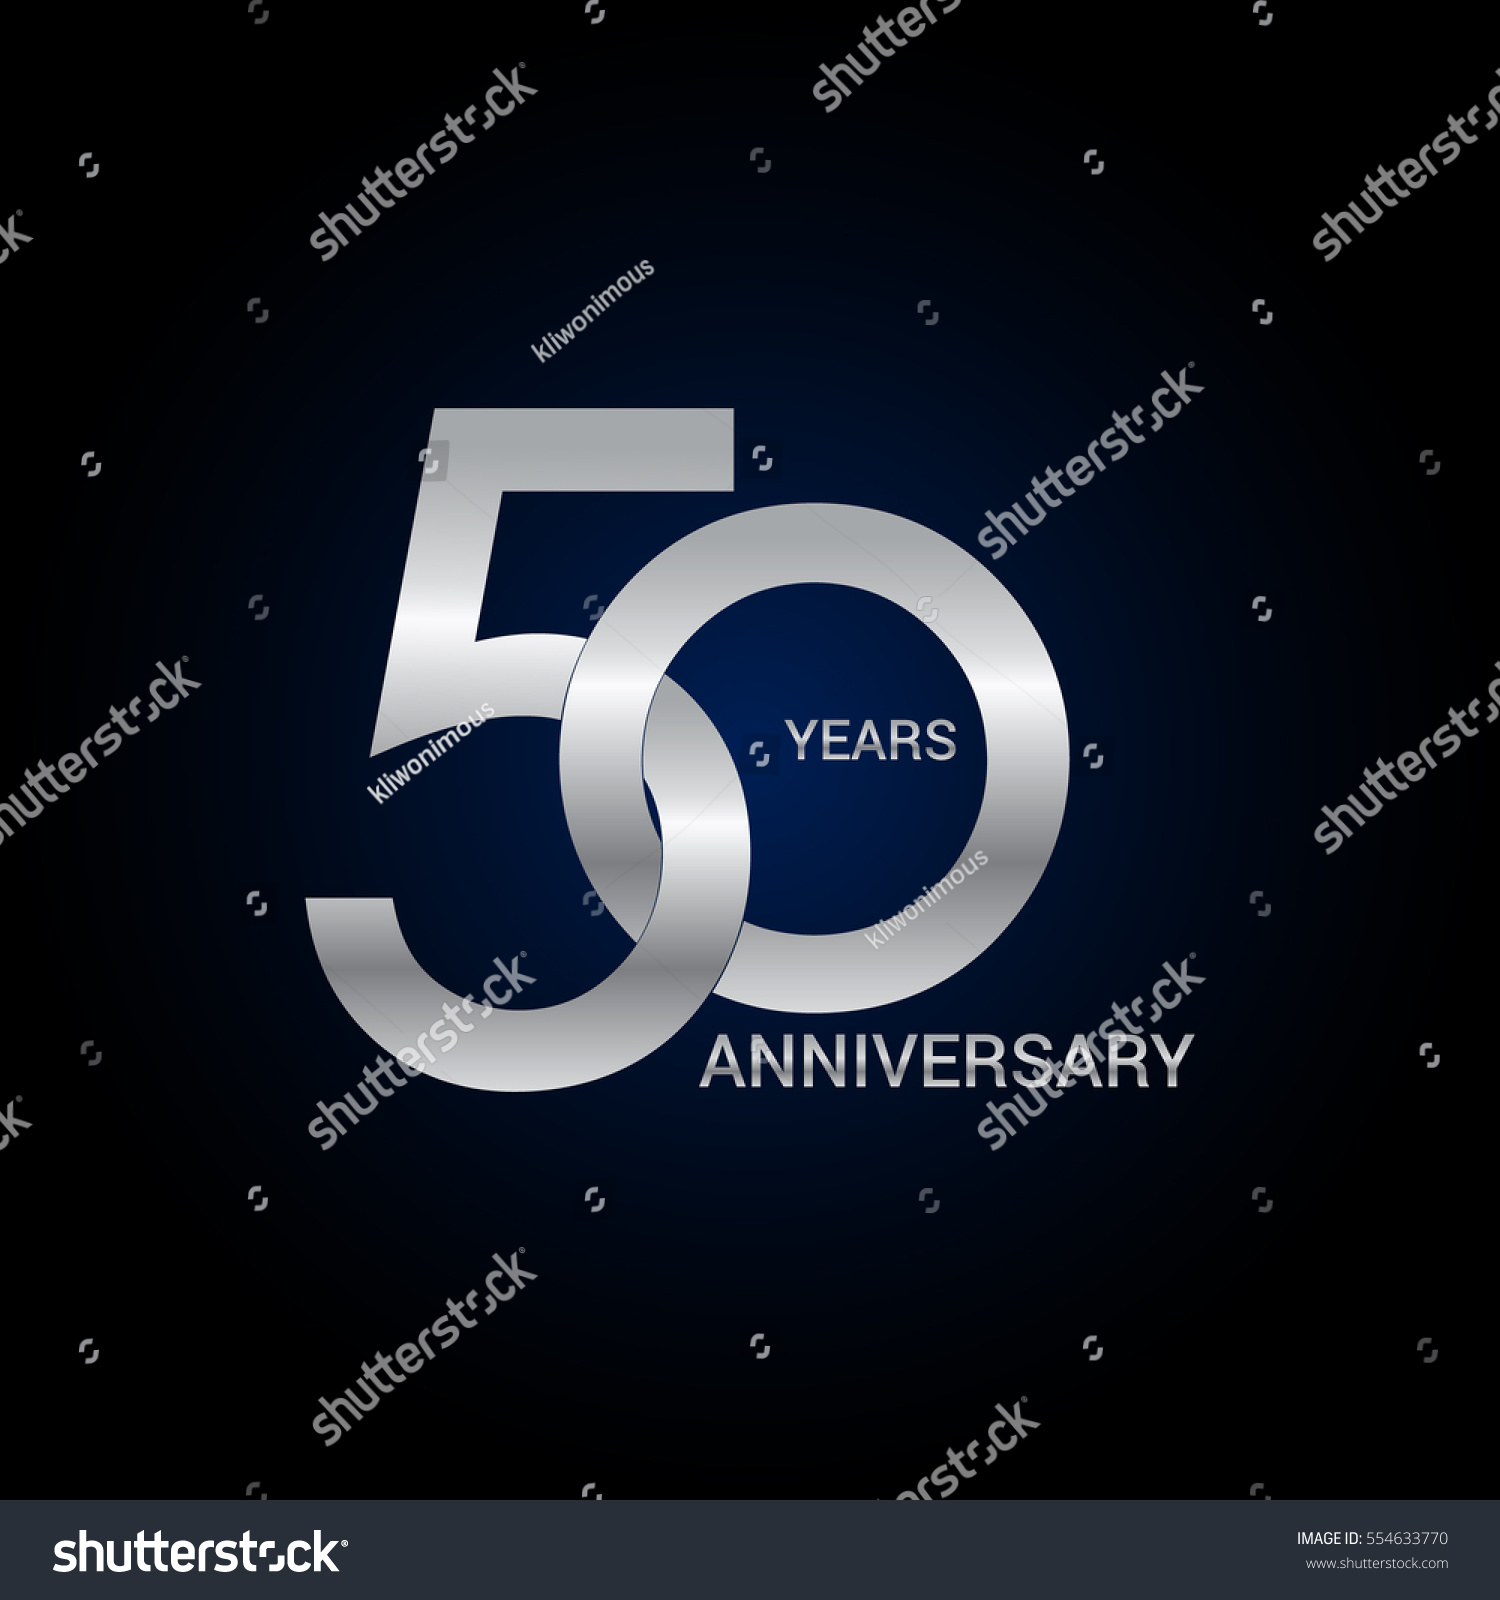 50 Years Anniversary Silver Signs Symbols Simple Logo Design